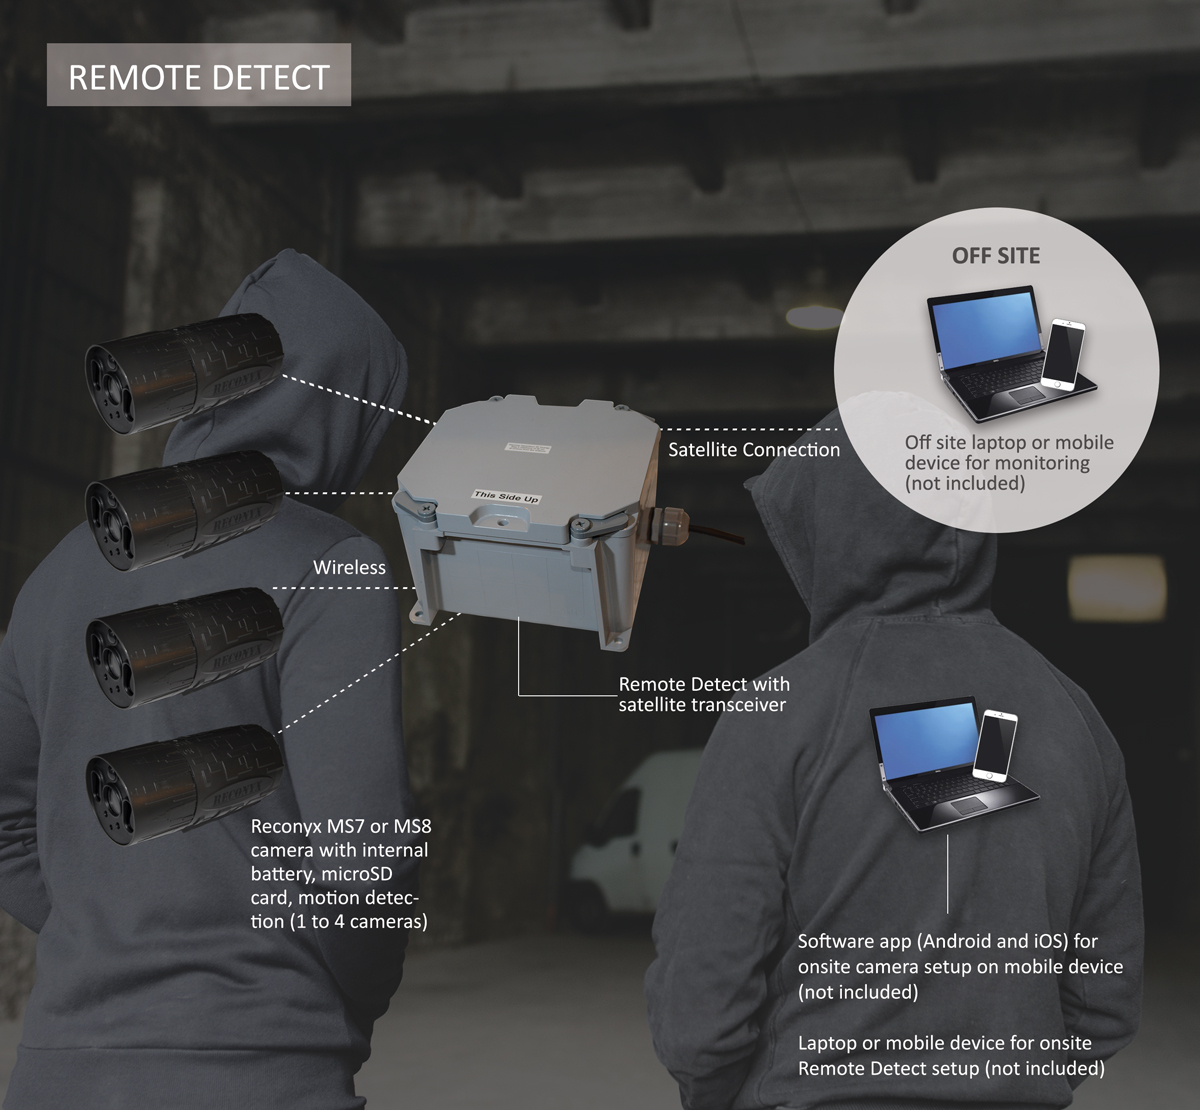 remote-detect-nupoint-M2M-satellite-camera - Nupoint Systems